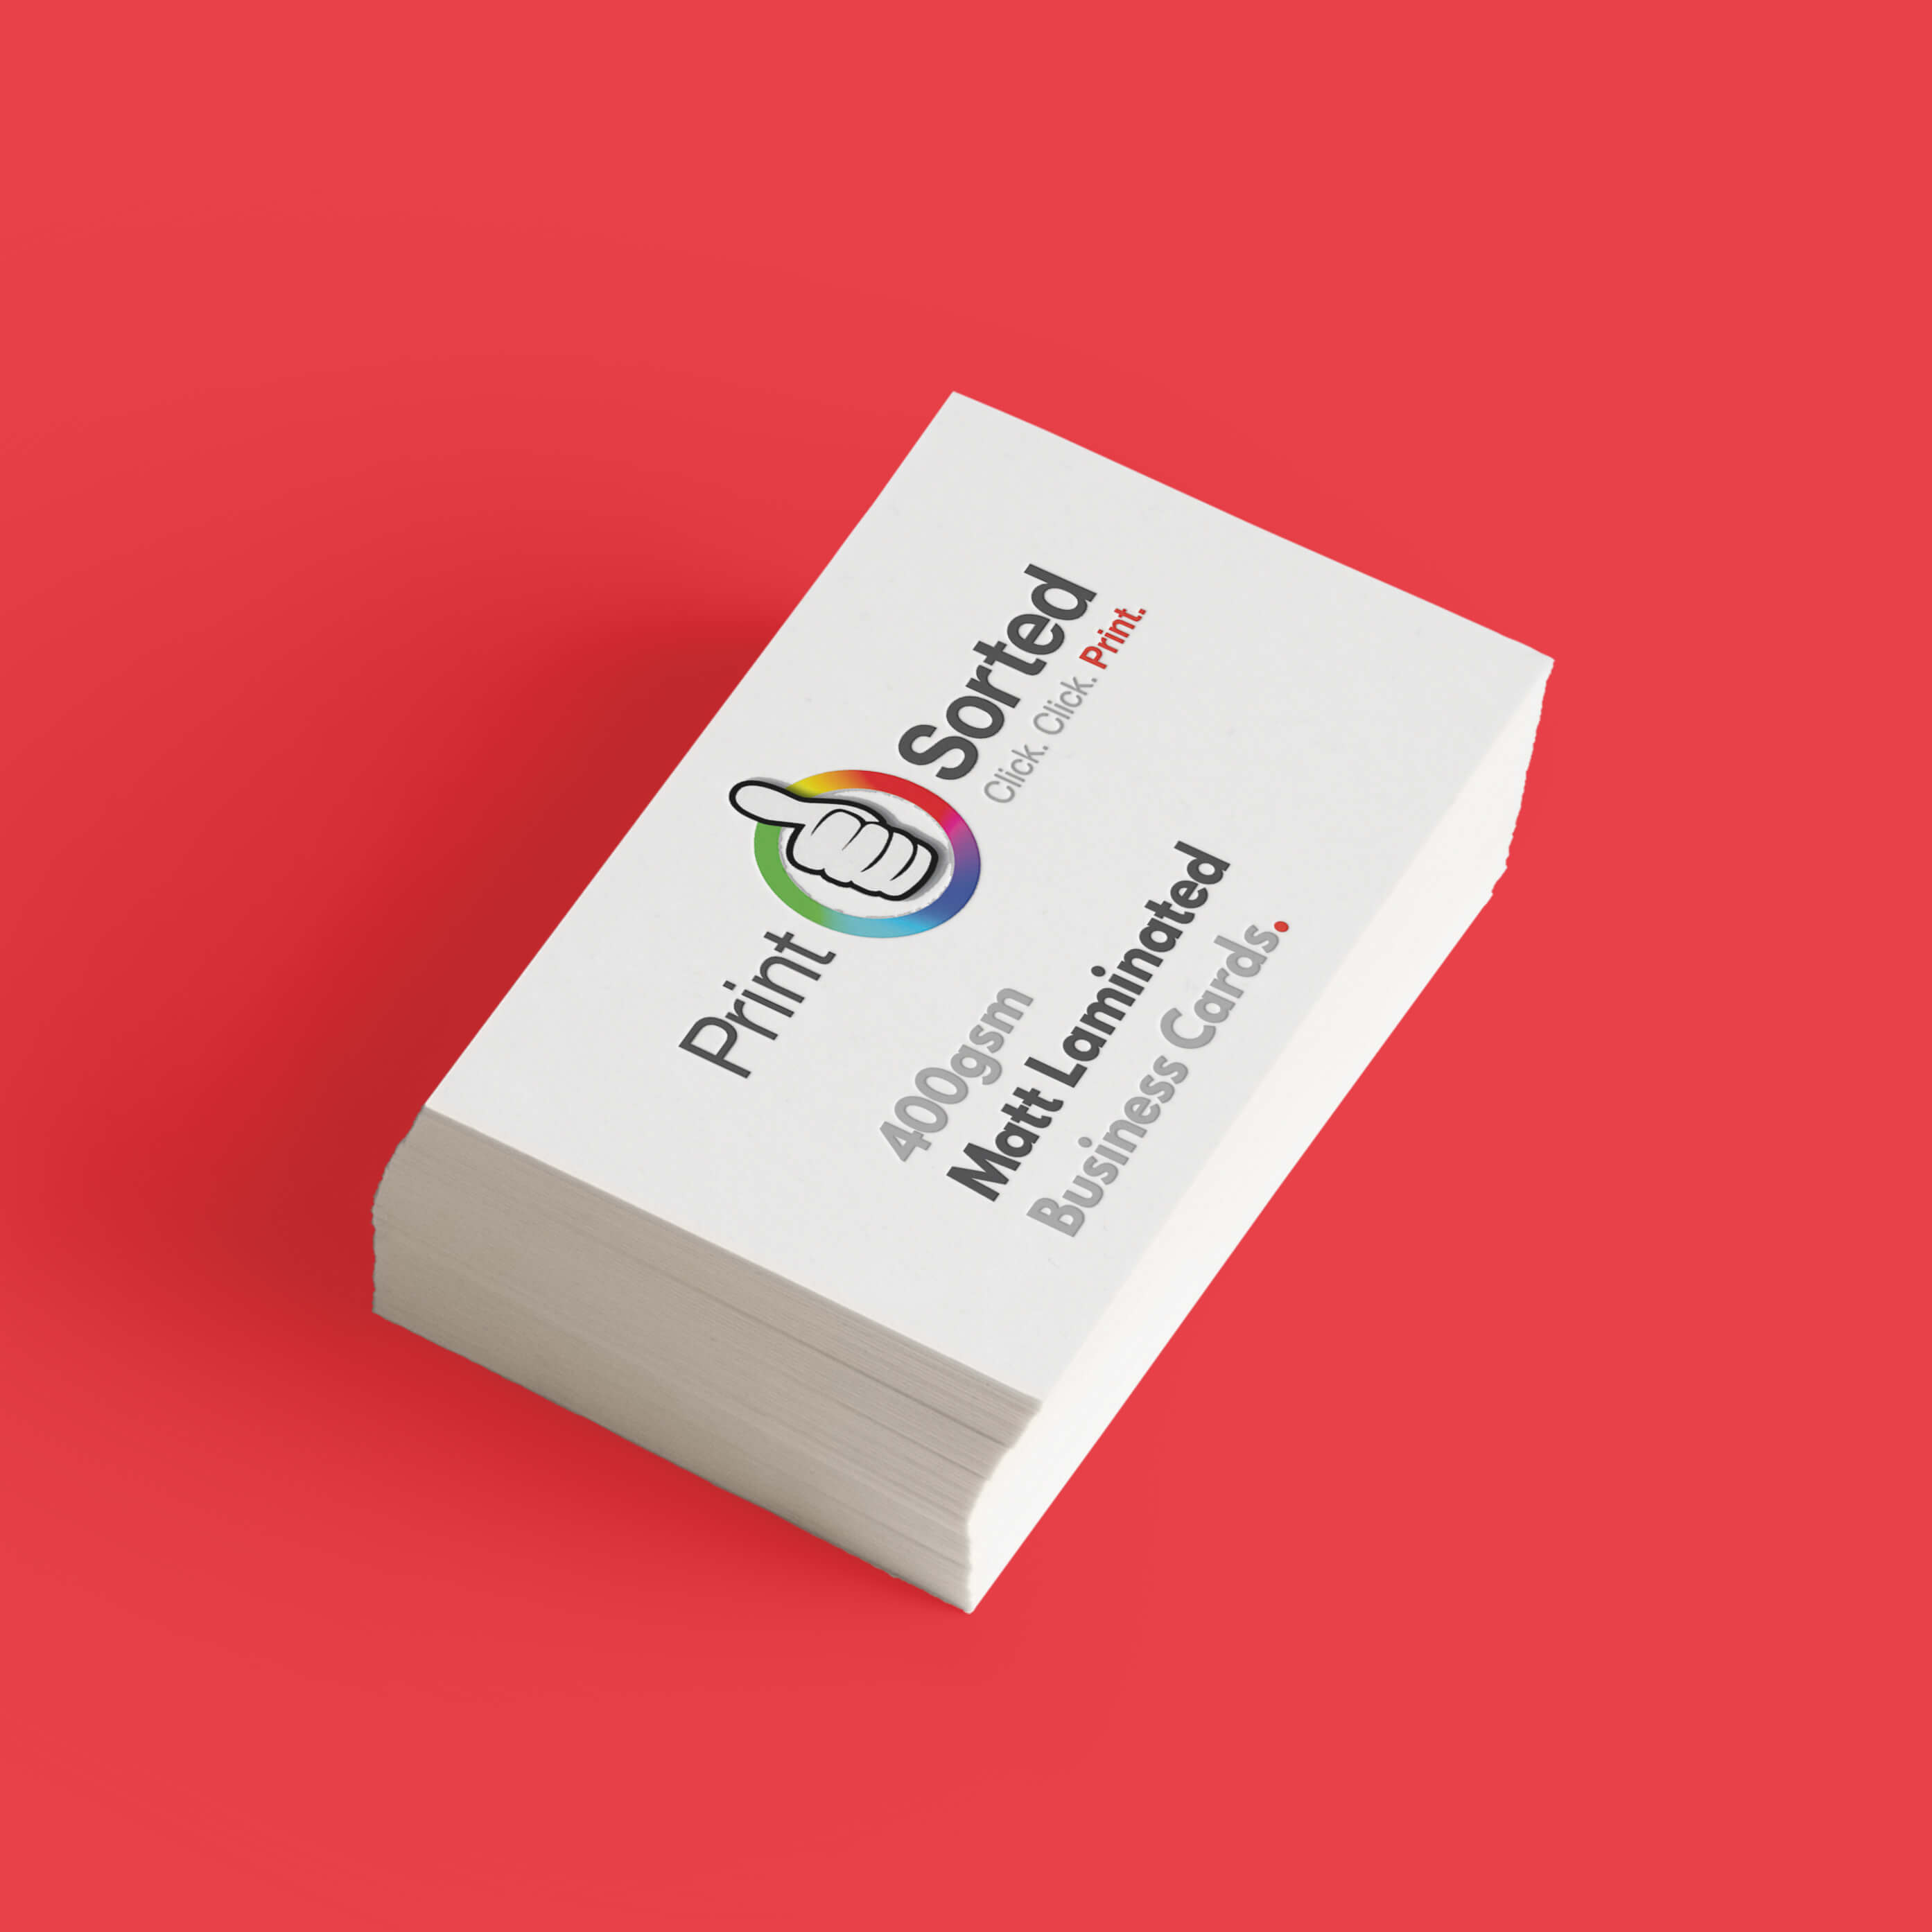 400gsm matt laminated business cards all your print sorted by ps 400gsm matt laminated business cards colourmoves Image collections